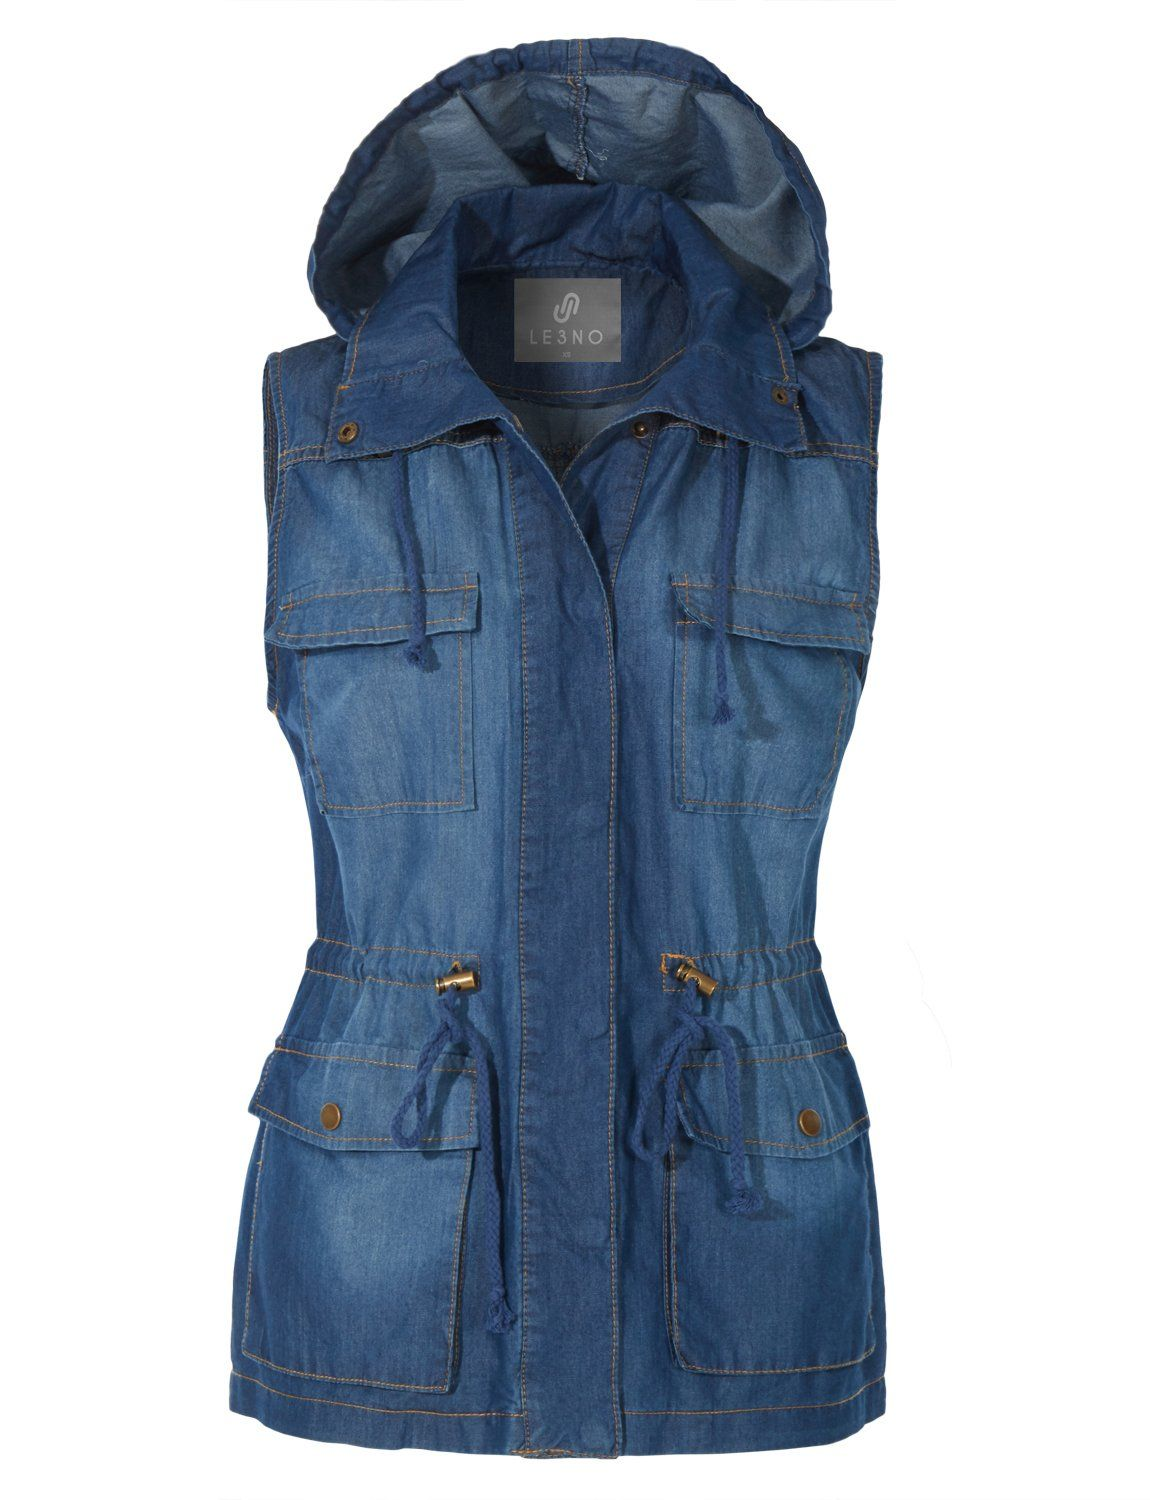 4b3cb80c7d00a0 Give your outfit a flare of the denim trend with our utility vest. Crafted  with refined soft cotton and tencel material